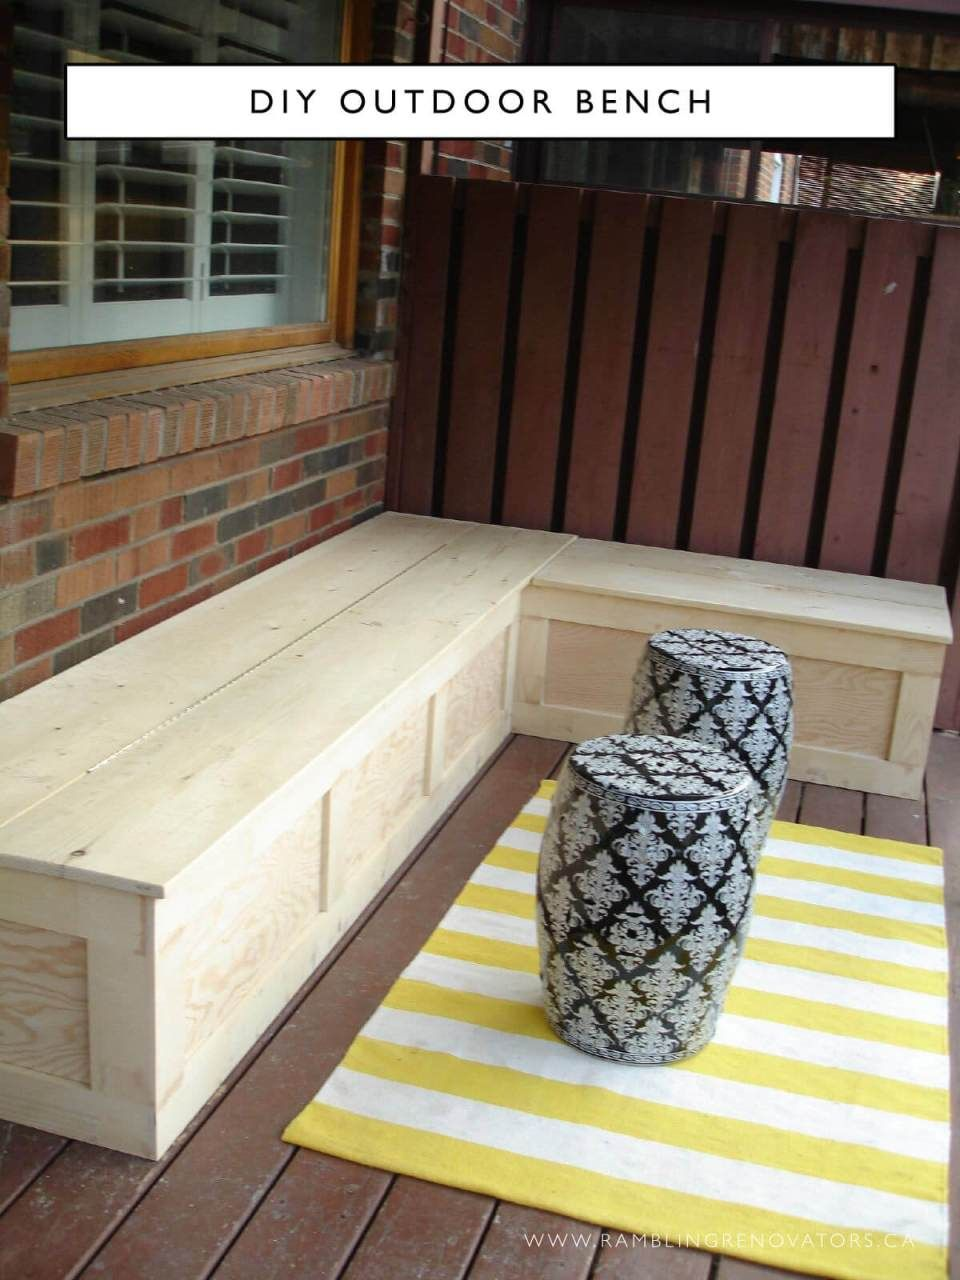 Amazing 26 Awesome Easy Diy Outdoor Bench Ideas For Your Backyard Andrewgaddart Wooden Chair Designs For Living Room Andrewgaddartcom